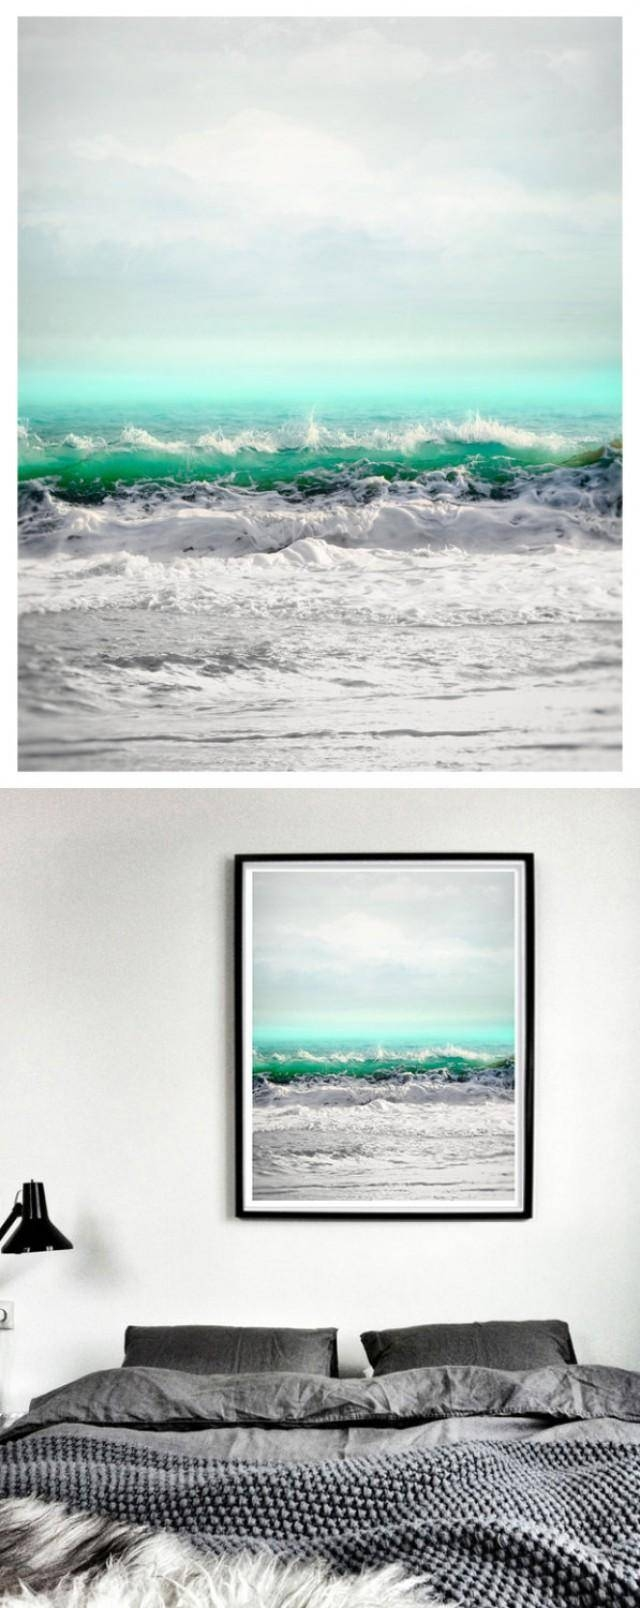 Sea Art Print, Extra Large Wall Art, Seascape Art, Oversized Ocean For Latest Coastal Wall Art (Gallery 11 of 12)